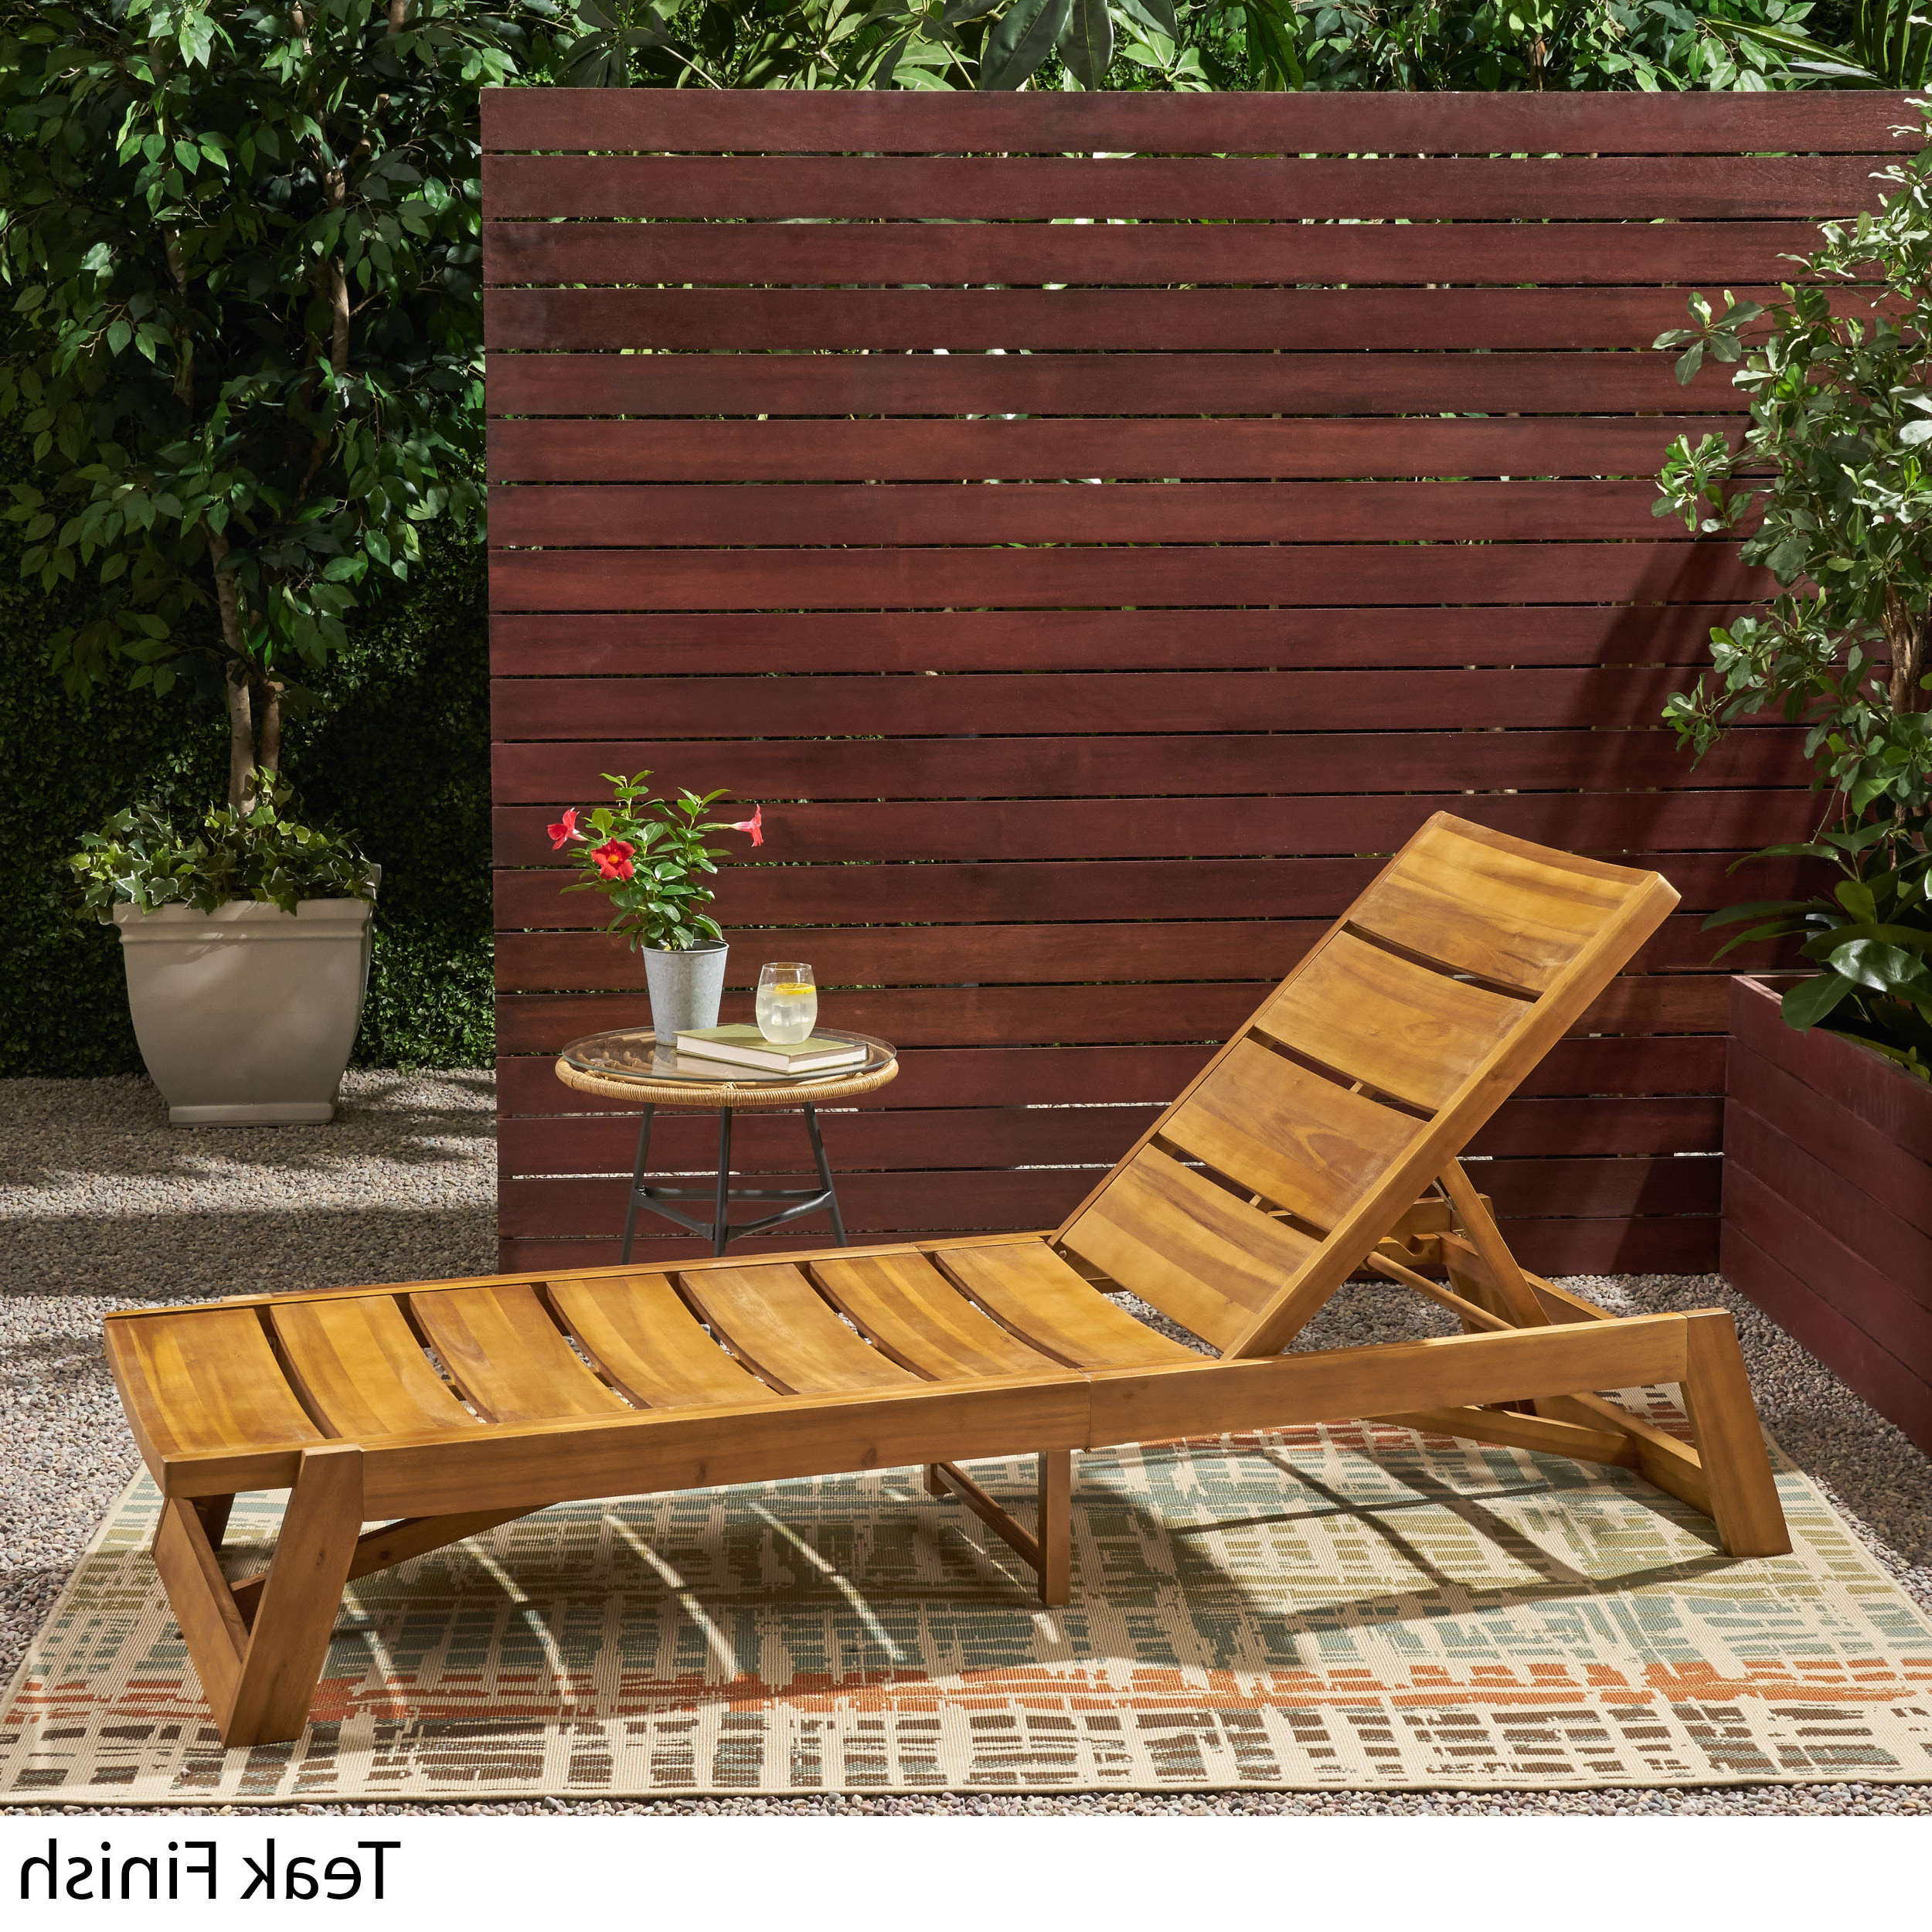 Maki Outdoor Wood Chaise Lounges Pertaining To Preferred Details About Maki Outdoor Wood And Iron Chaise Lounge (Gallery 7 of 25)